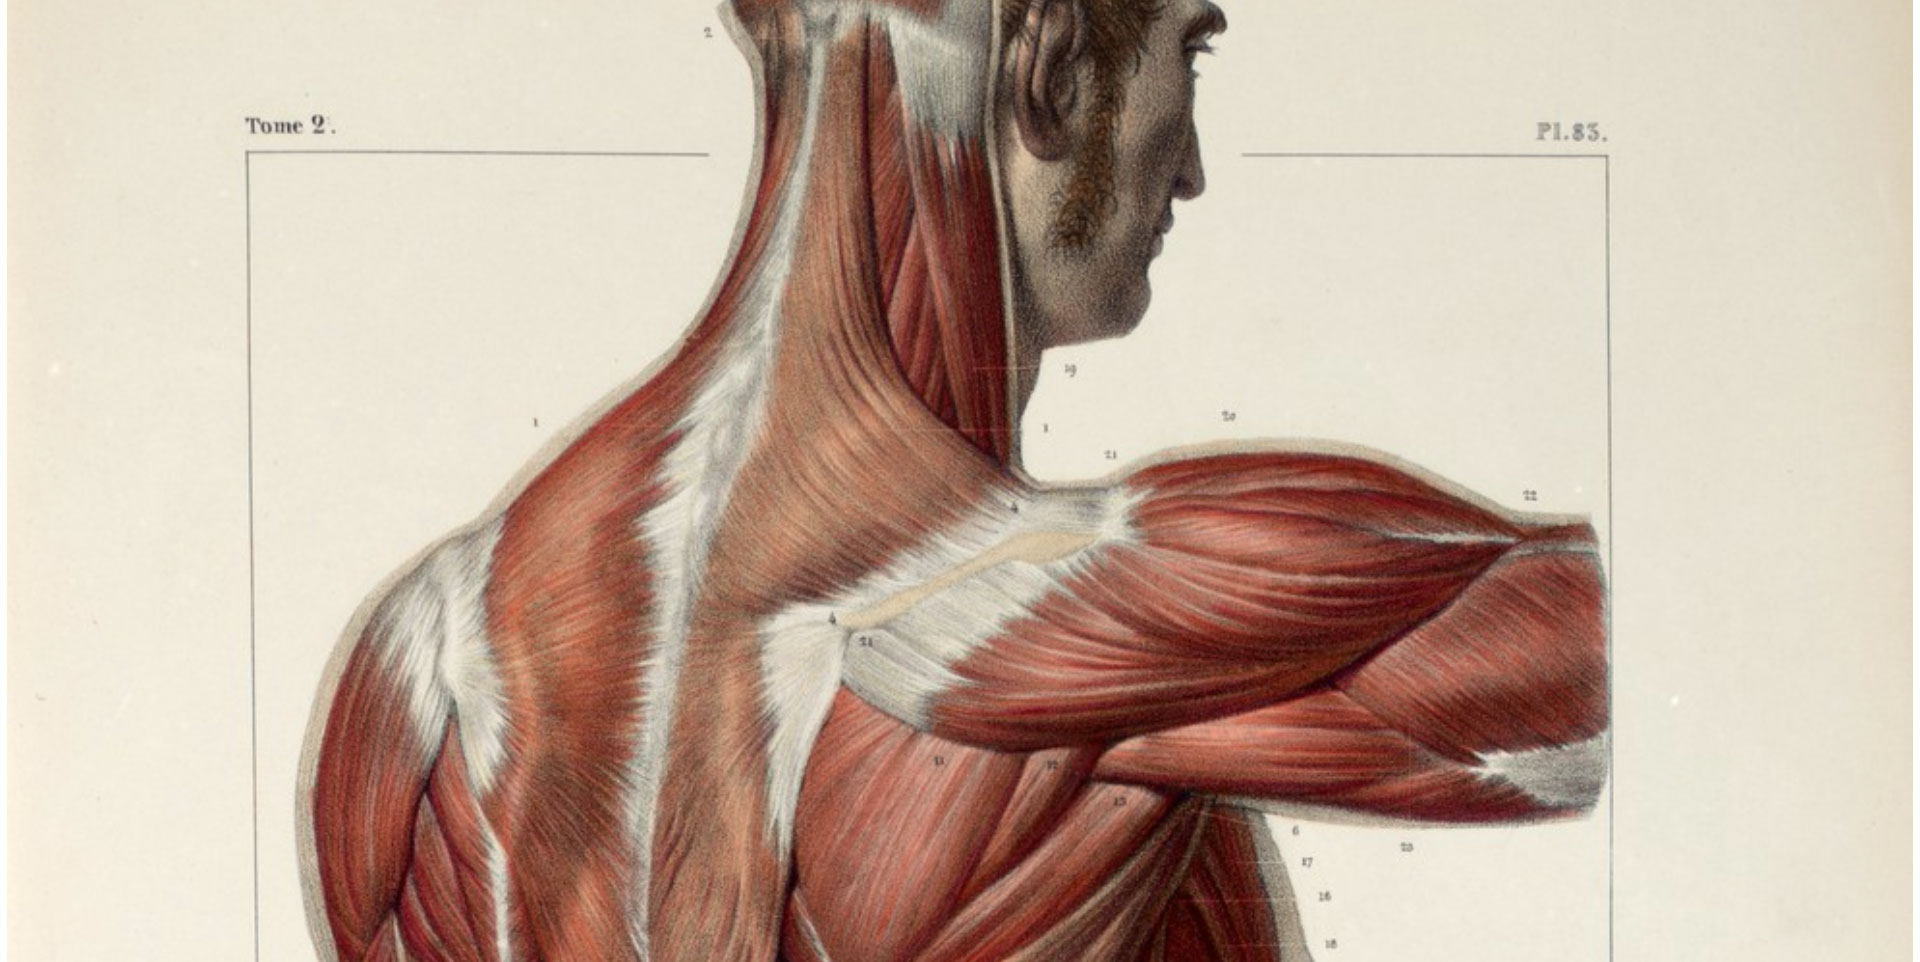 Muscles of the back, shoulder and buttocks.